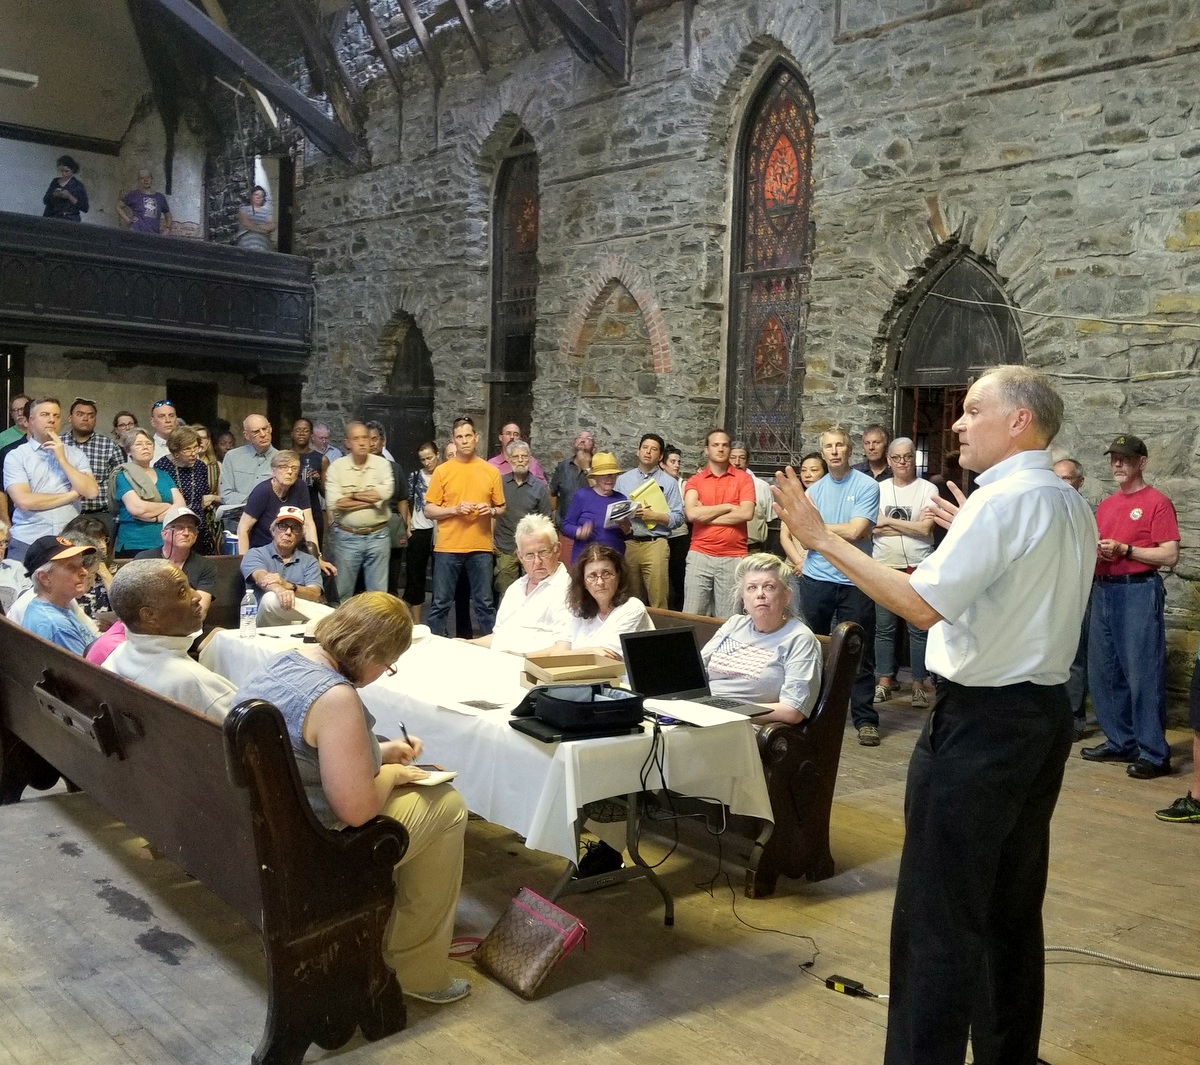 Ben Fredericks III addresses community residents inside the long-vacant Gothic Revival church. (Ed Gunts)